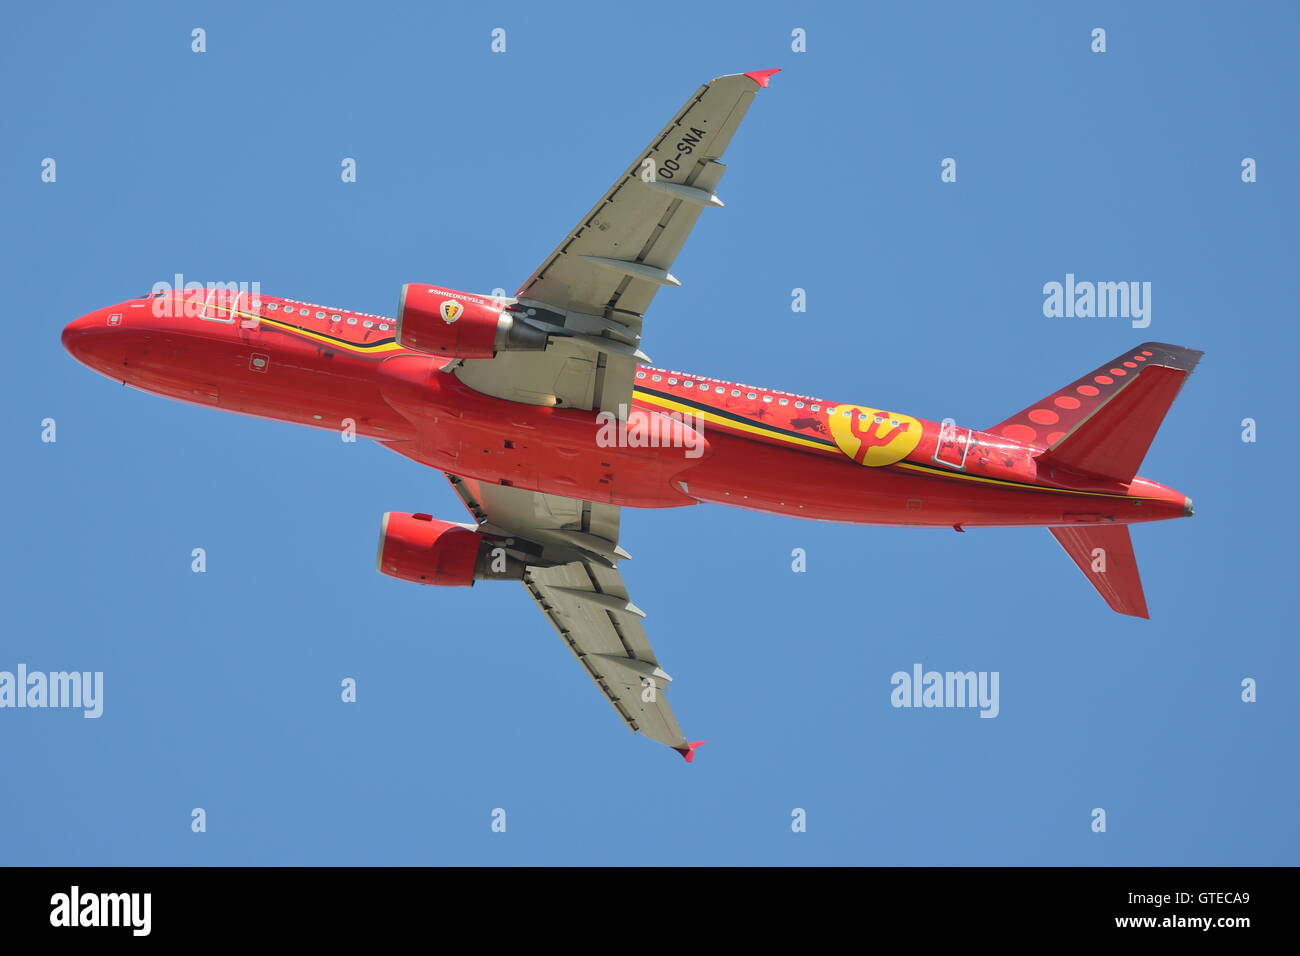 Brussels Airlines Airbus A320-214 OO-SNA in Red Devils livery departing from London Heathrow Airport, UK - Stock Image